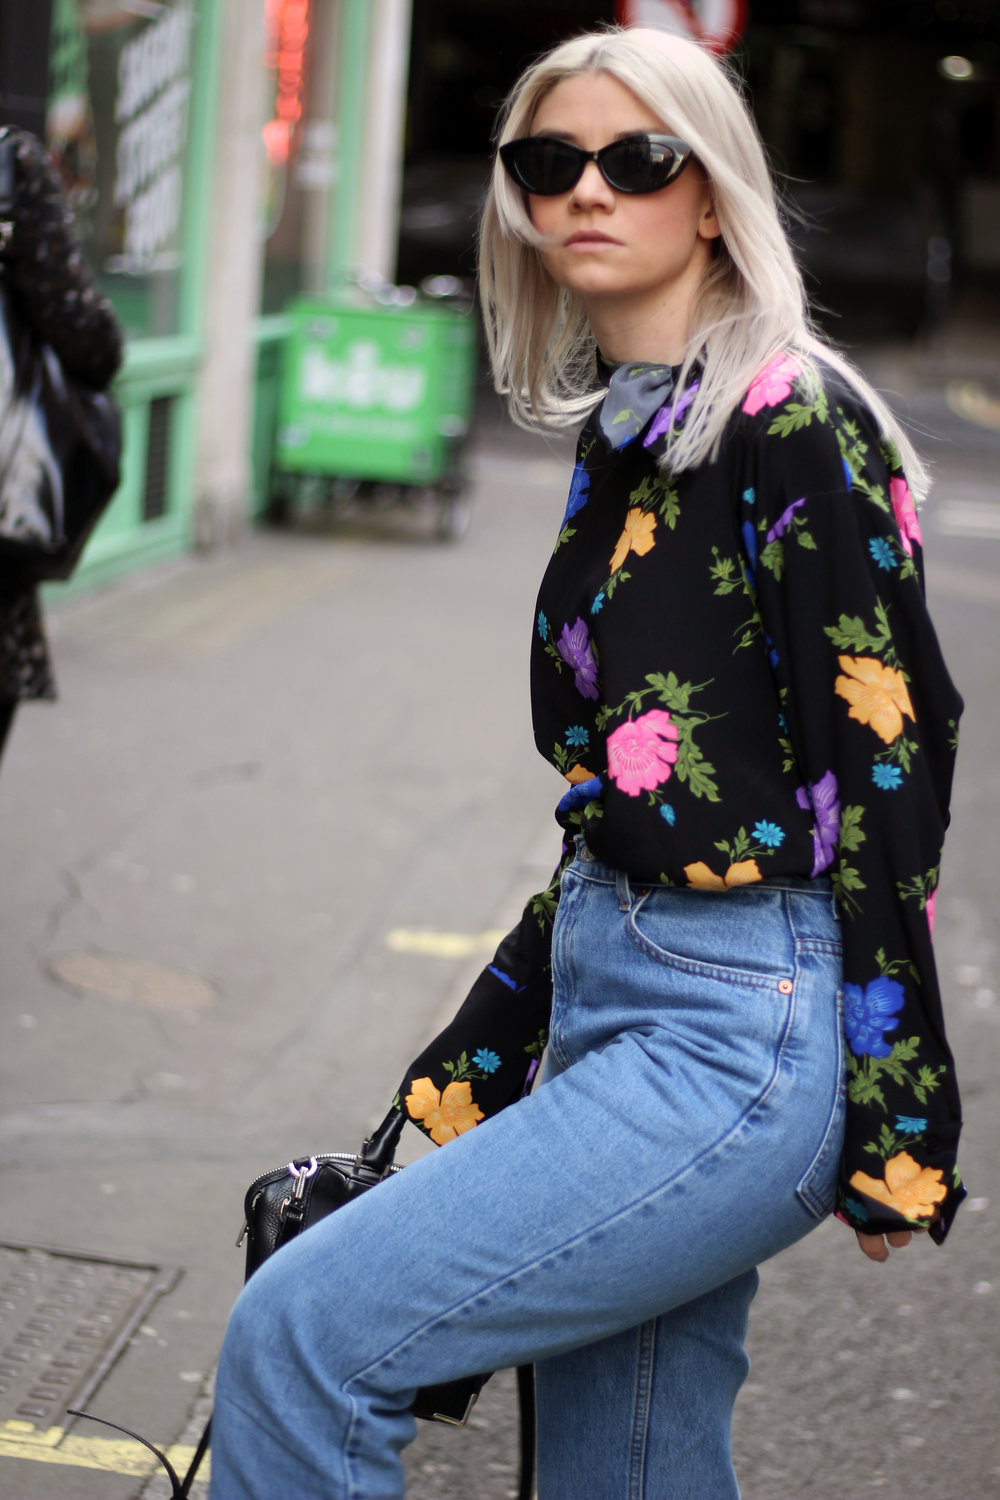 Topshop boutique silk blouse, blogging with a full time job, northern magpie, joey taylor 5